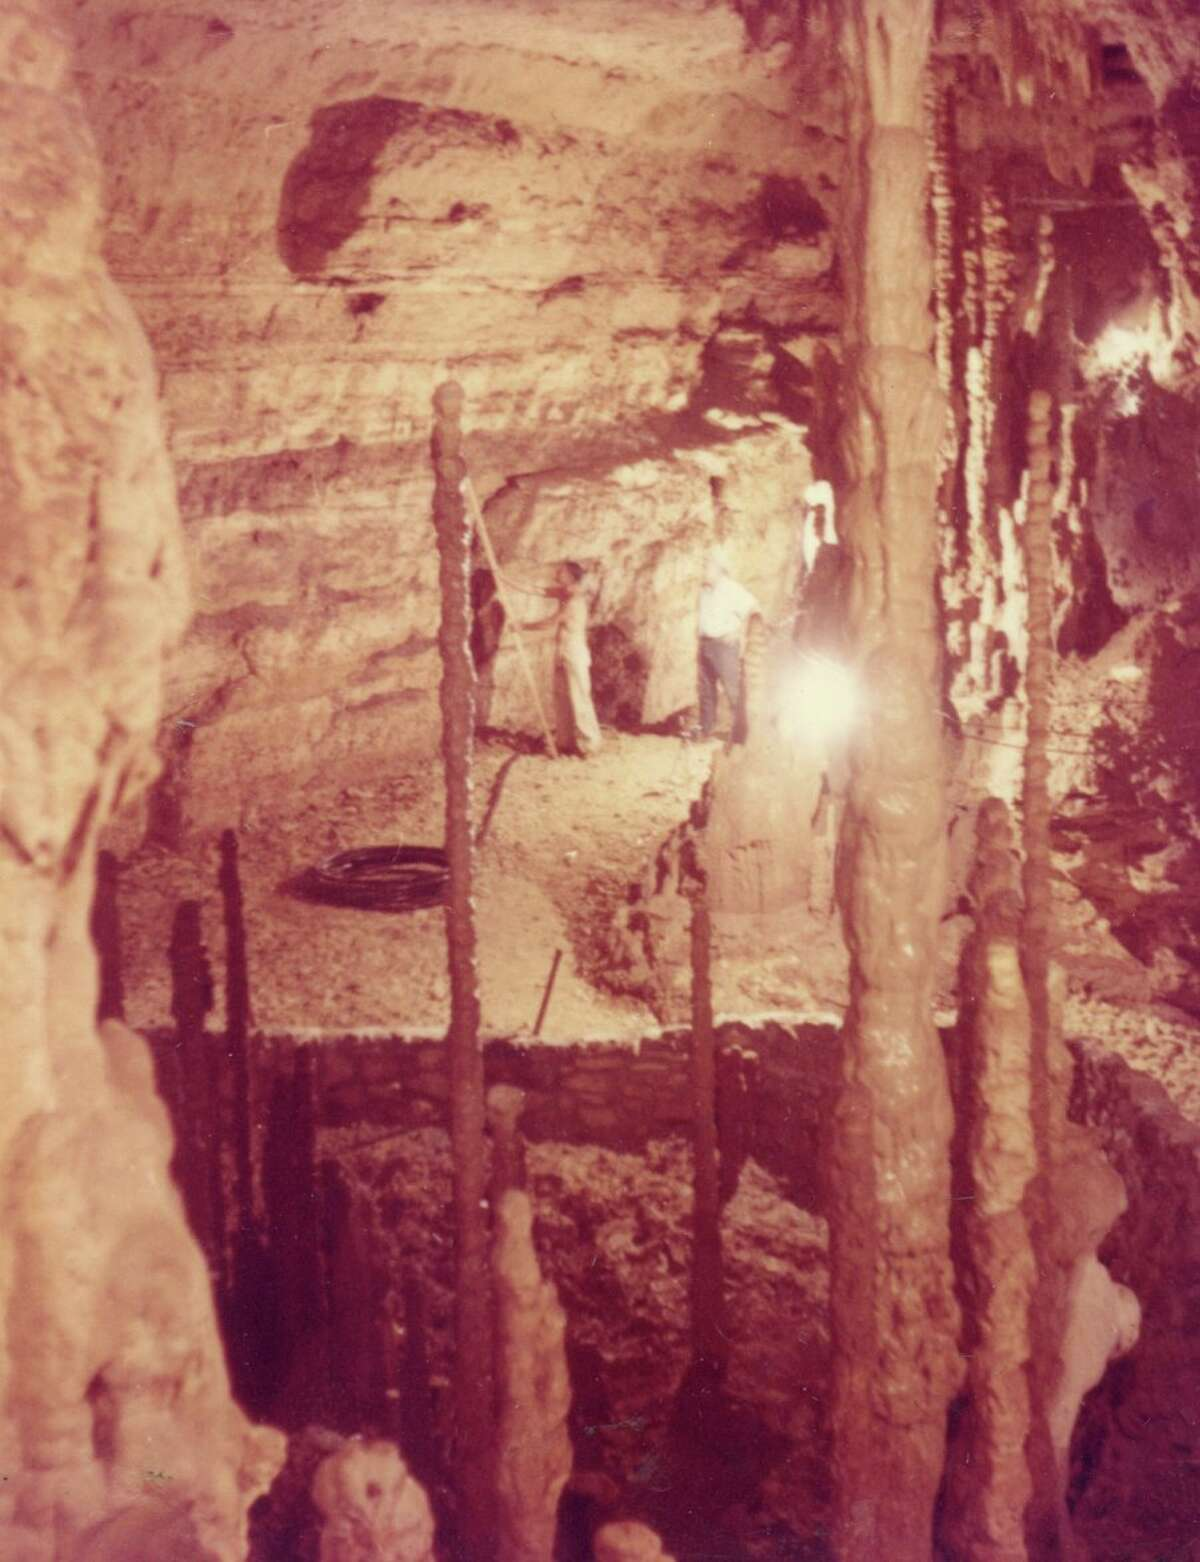 1963-64: Development related excavations took place at the caverns to enlarge the entrance, provide a walkway and develop a trail system inside the cavern. During excavation of the entrance trail, a human tooth, arrowheads, and spearheads dating from 5,000 BC were found.